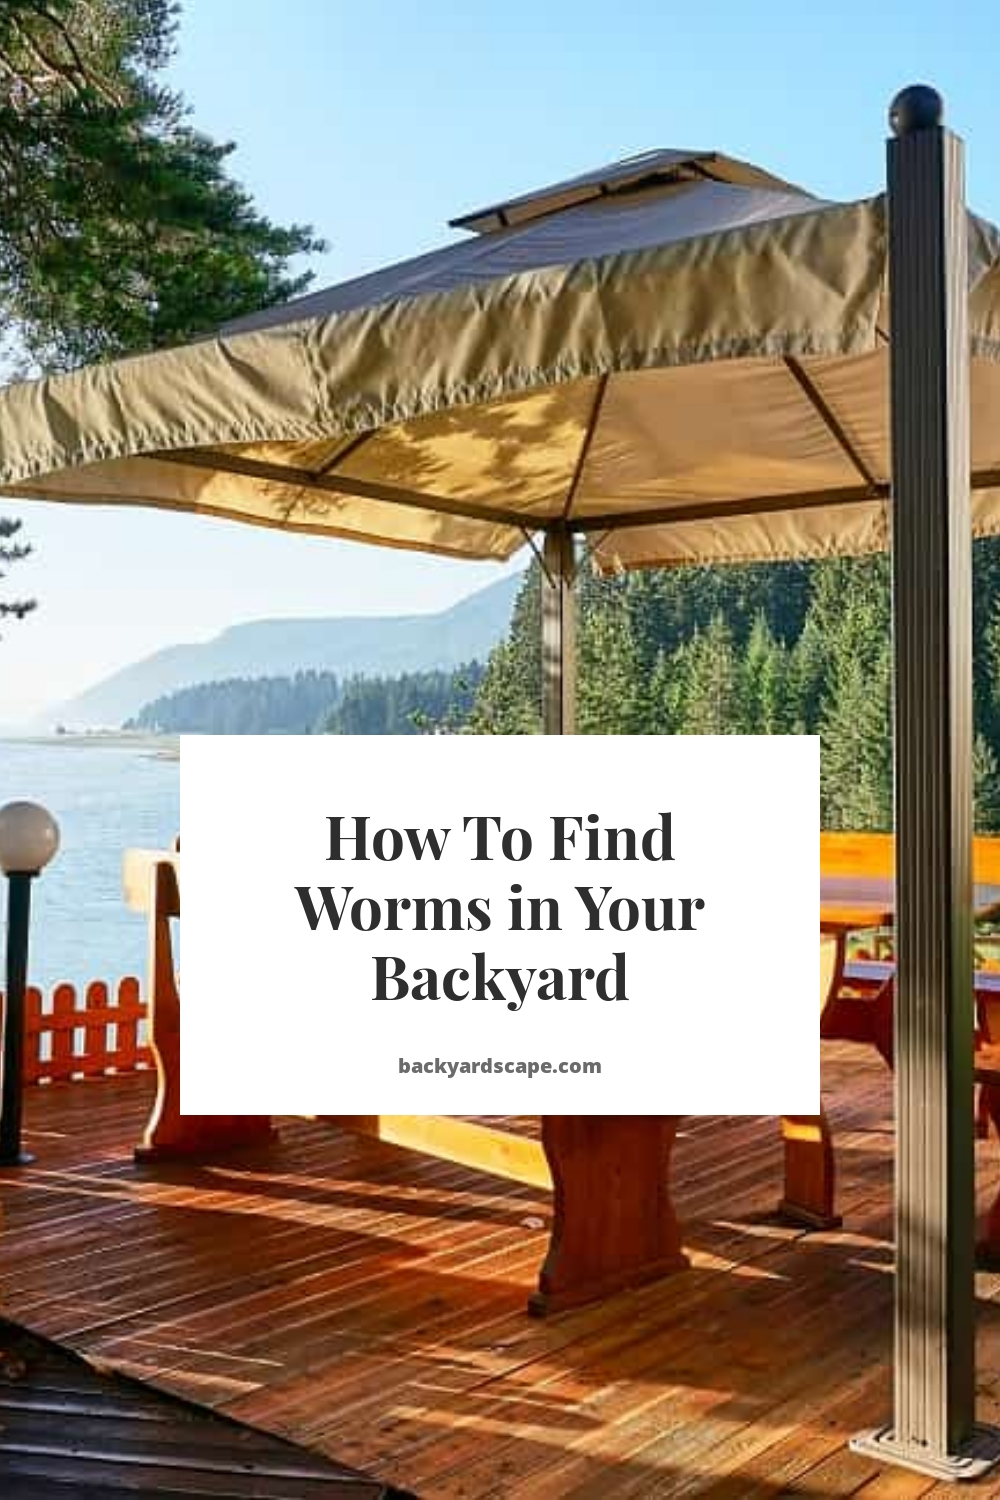 How To Find Worms in Your Backyard